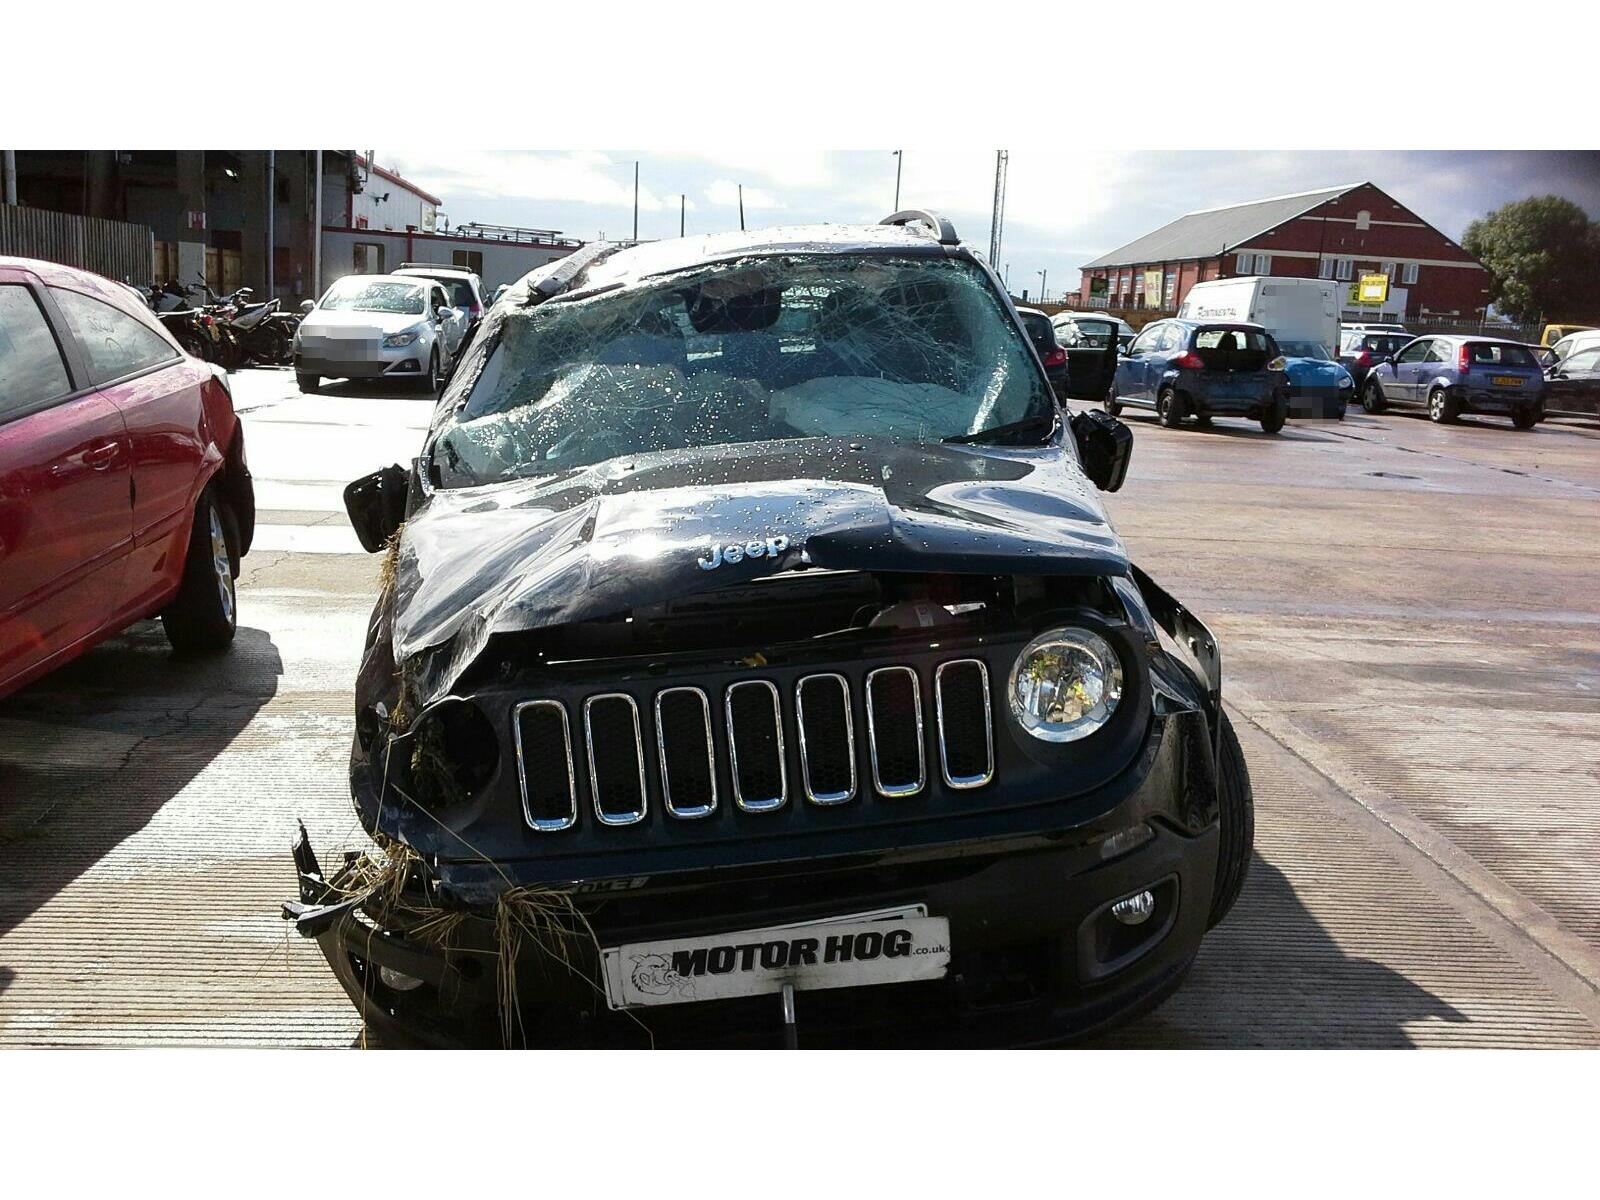 2015 Jeep Renegade 2015 5 Door Hatchback Petrol Manual